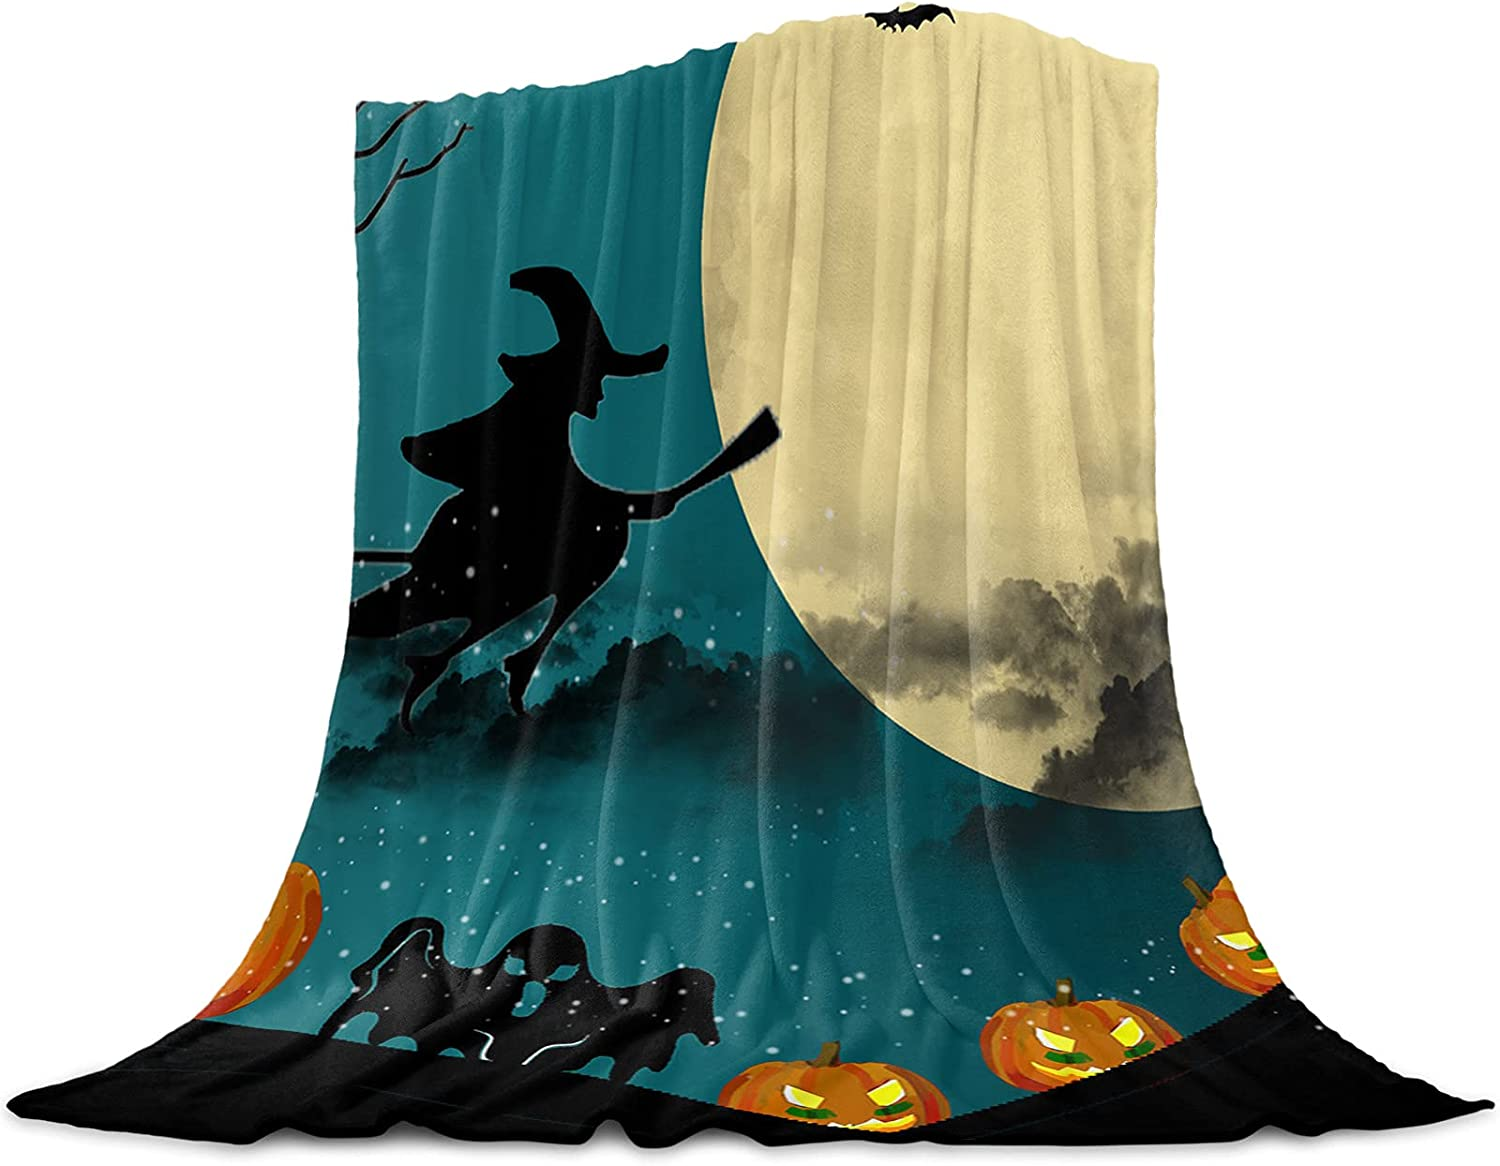 Very popular Fantasy Staring Throw Blanket for Bed Couch New product! New type 59 Inche Witch 79 x